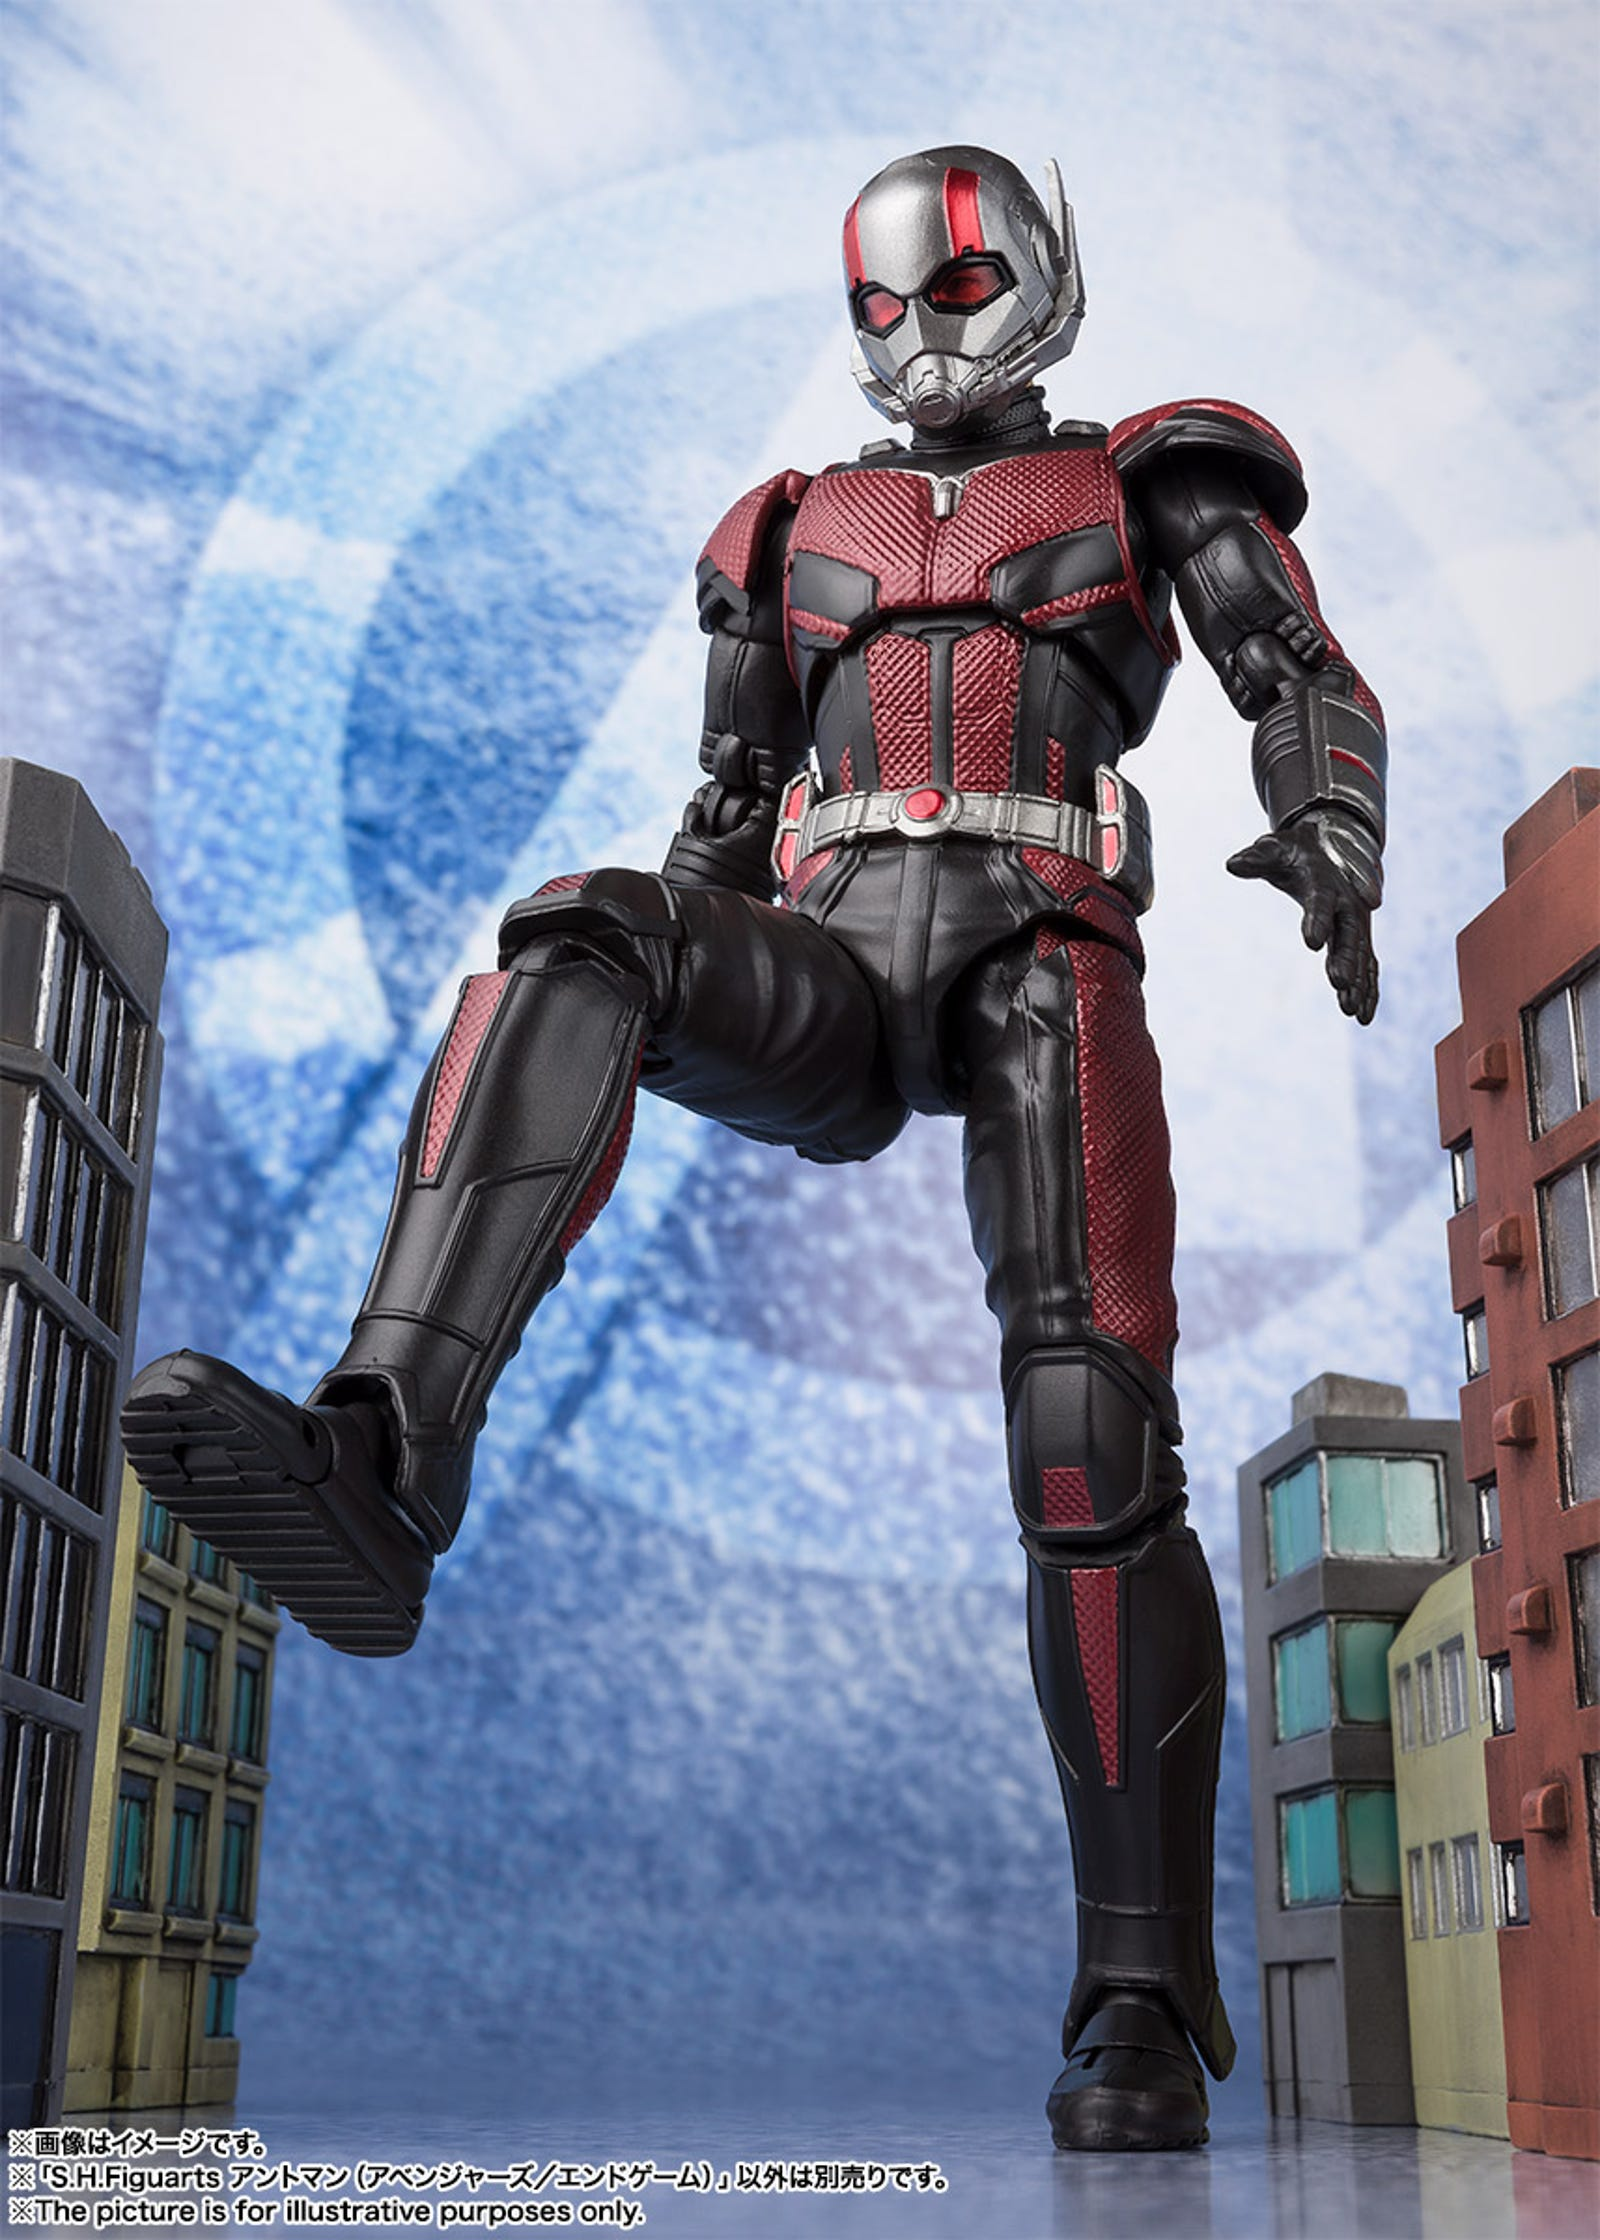 Lastly, Ant-Man is weirdly a few dollars less, at around $56. And it's not like it's because he's smaller. He does come with a smaller version of himself though.